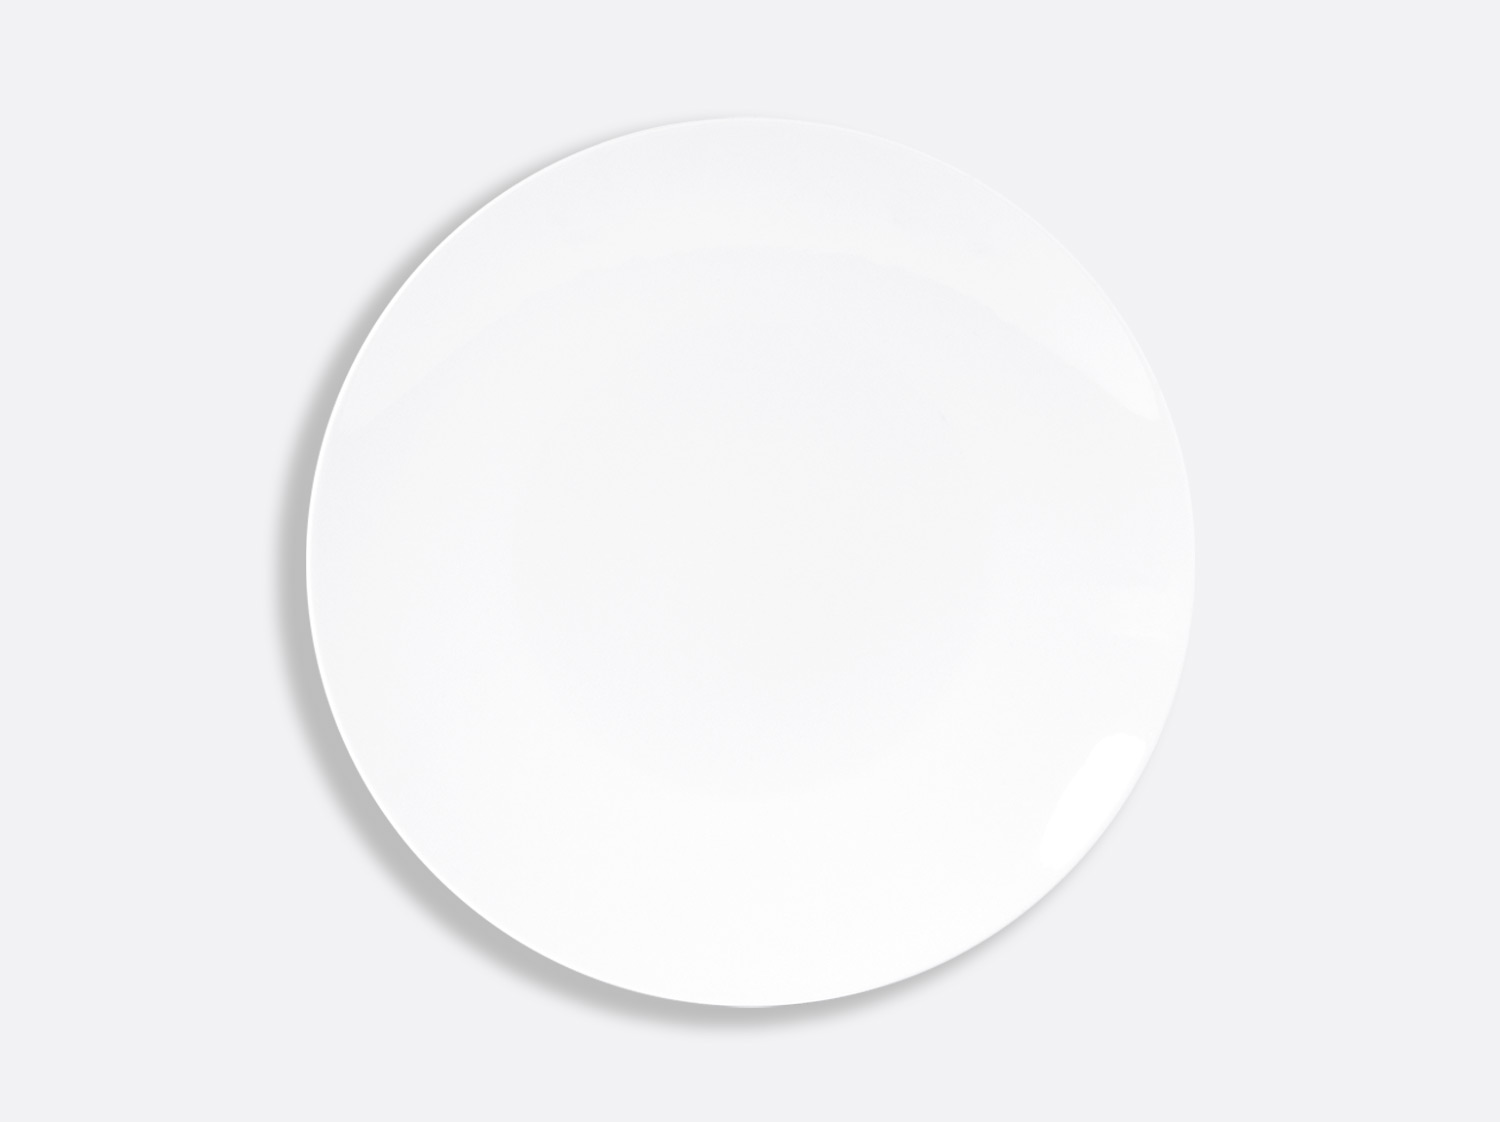 Assiette coupe 27 cm en porcelaine de la collection DOMUS BLANC Bernardaud